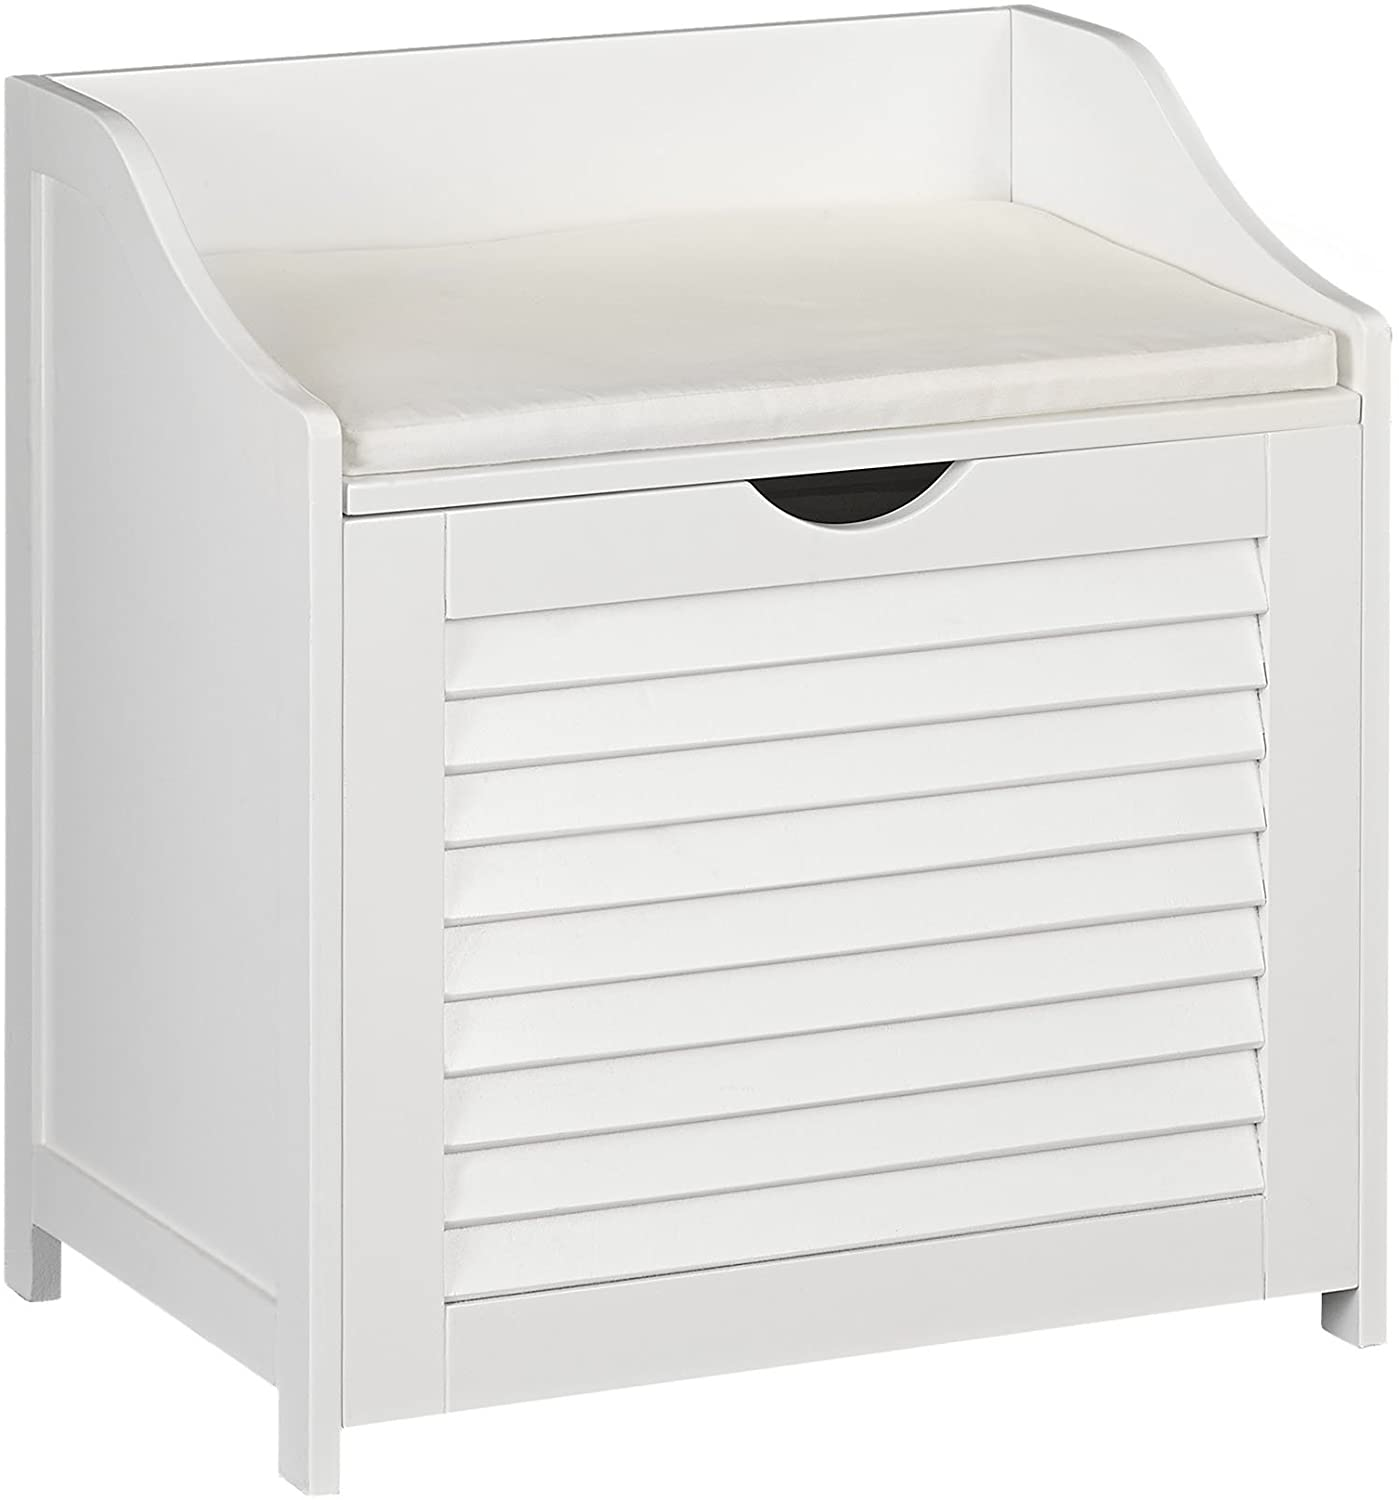 Household Essentials Single Load Hamper Cabinet Seat